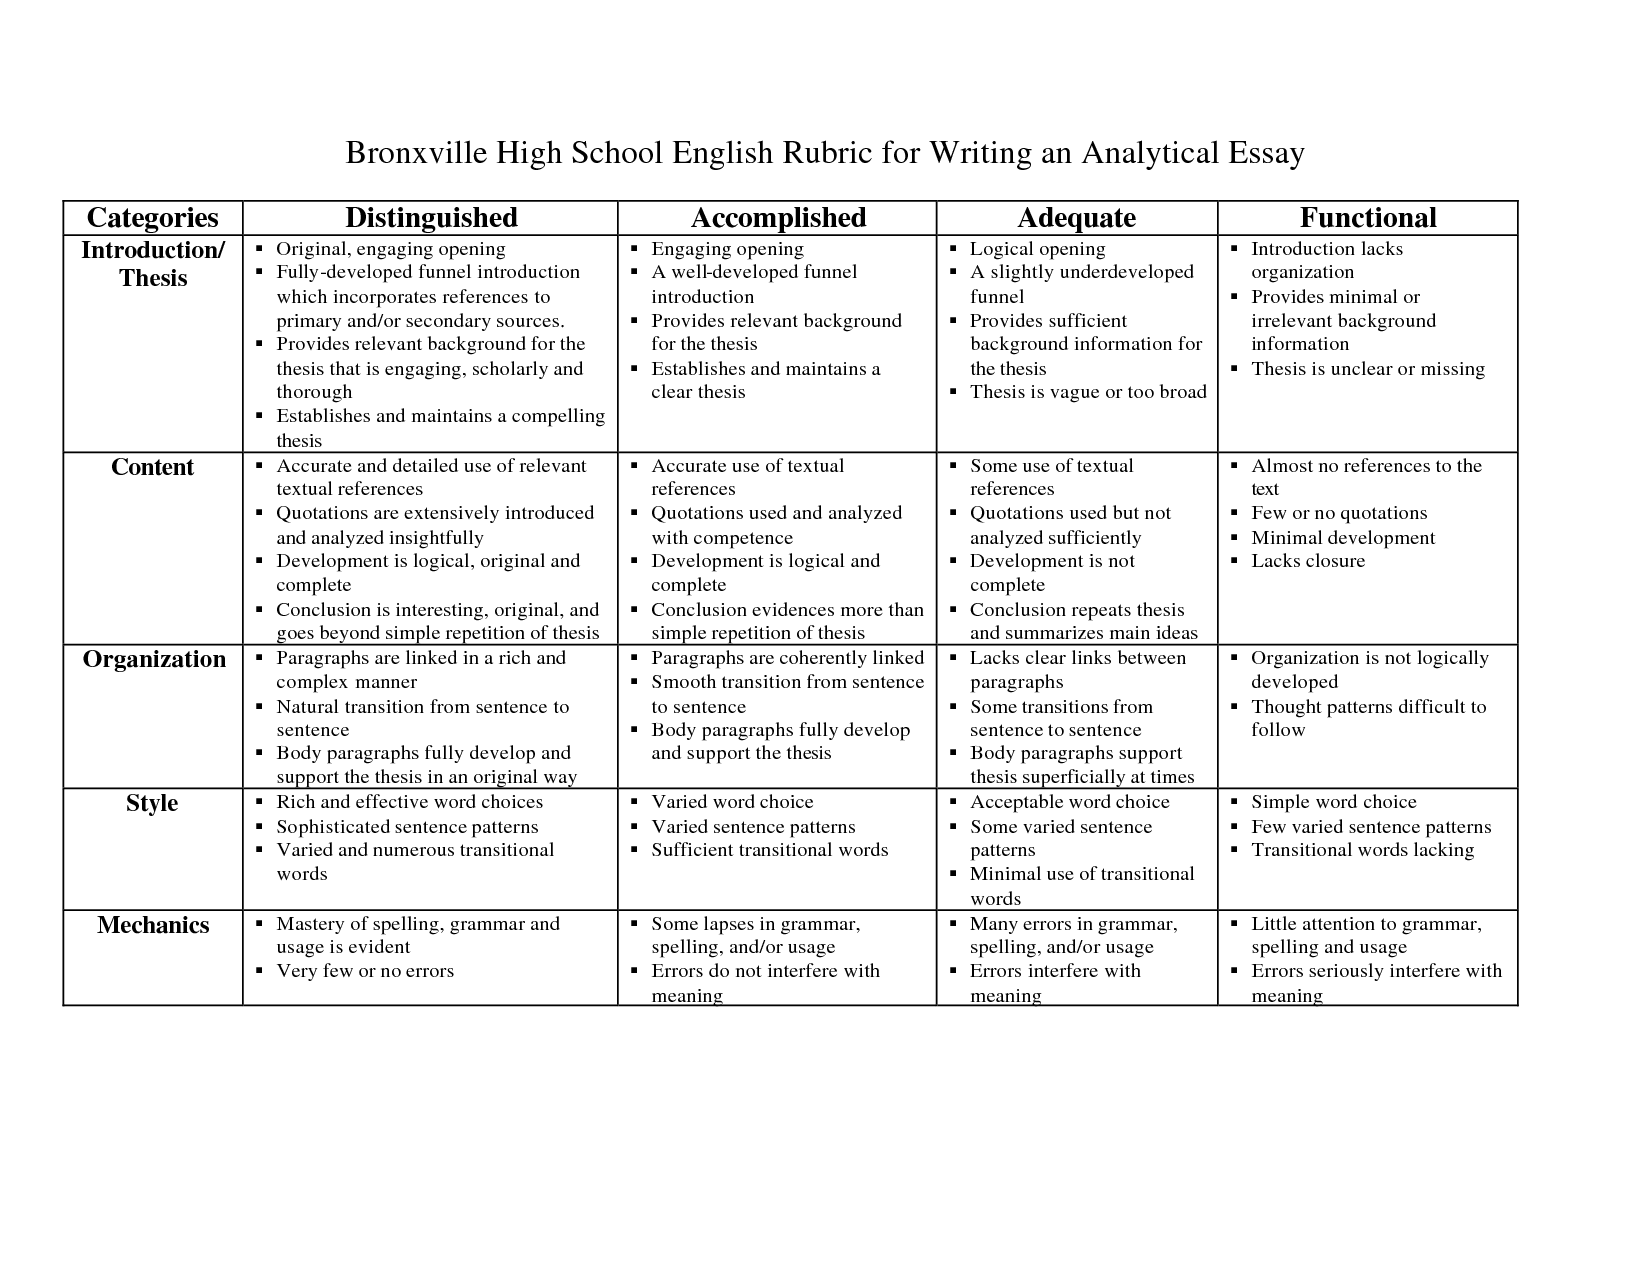 rubric for grading an essay To score the new sat essay, scorers will use this rubric, which describes characteristics shared by essays earning the same score point in each category.